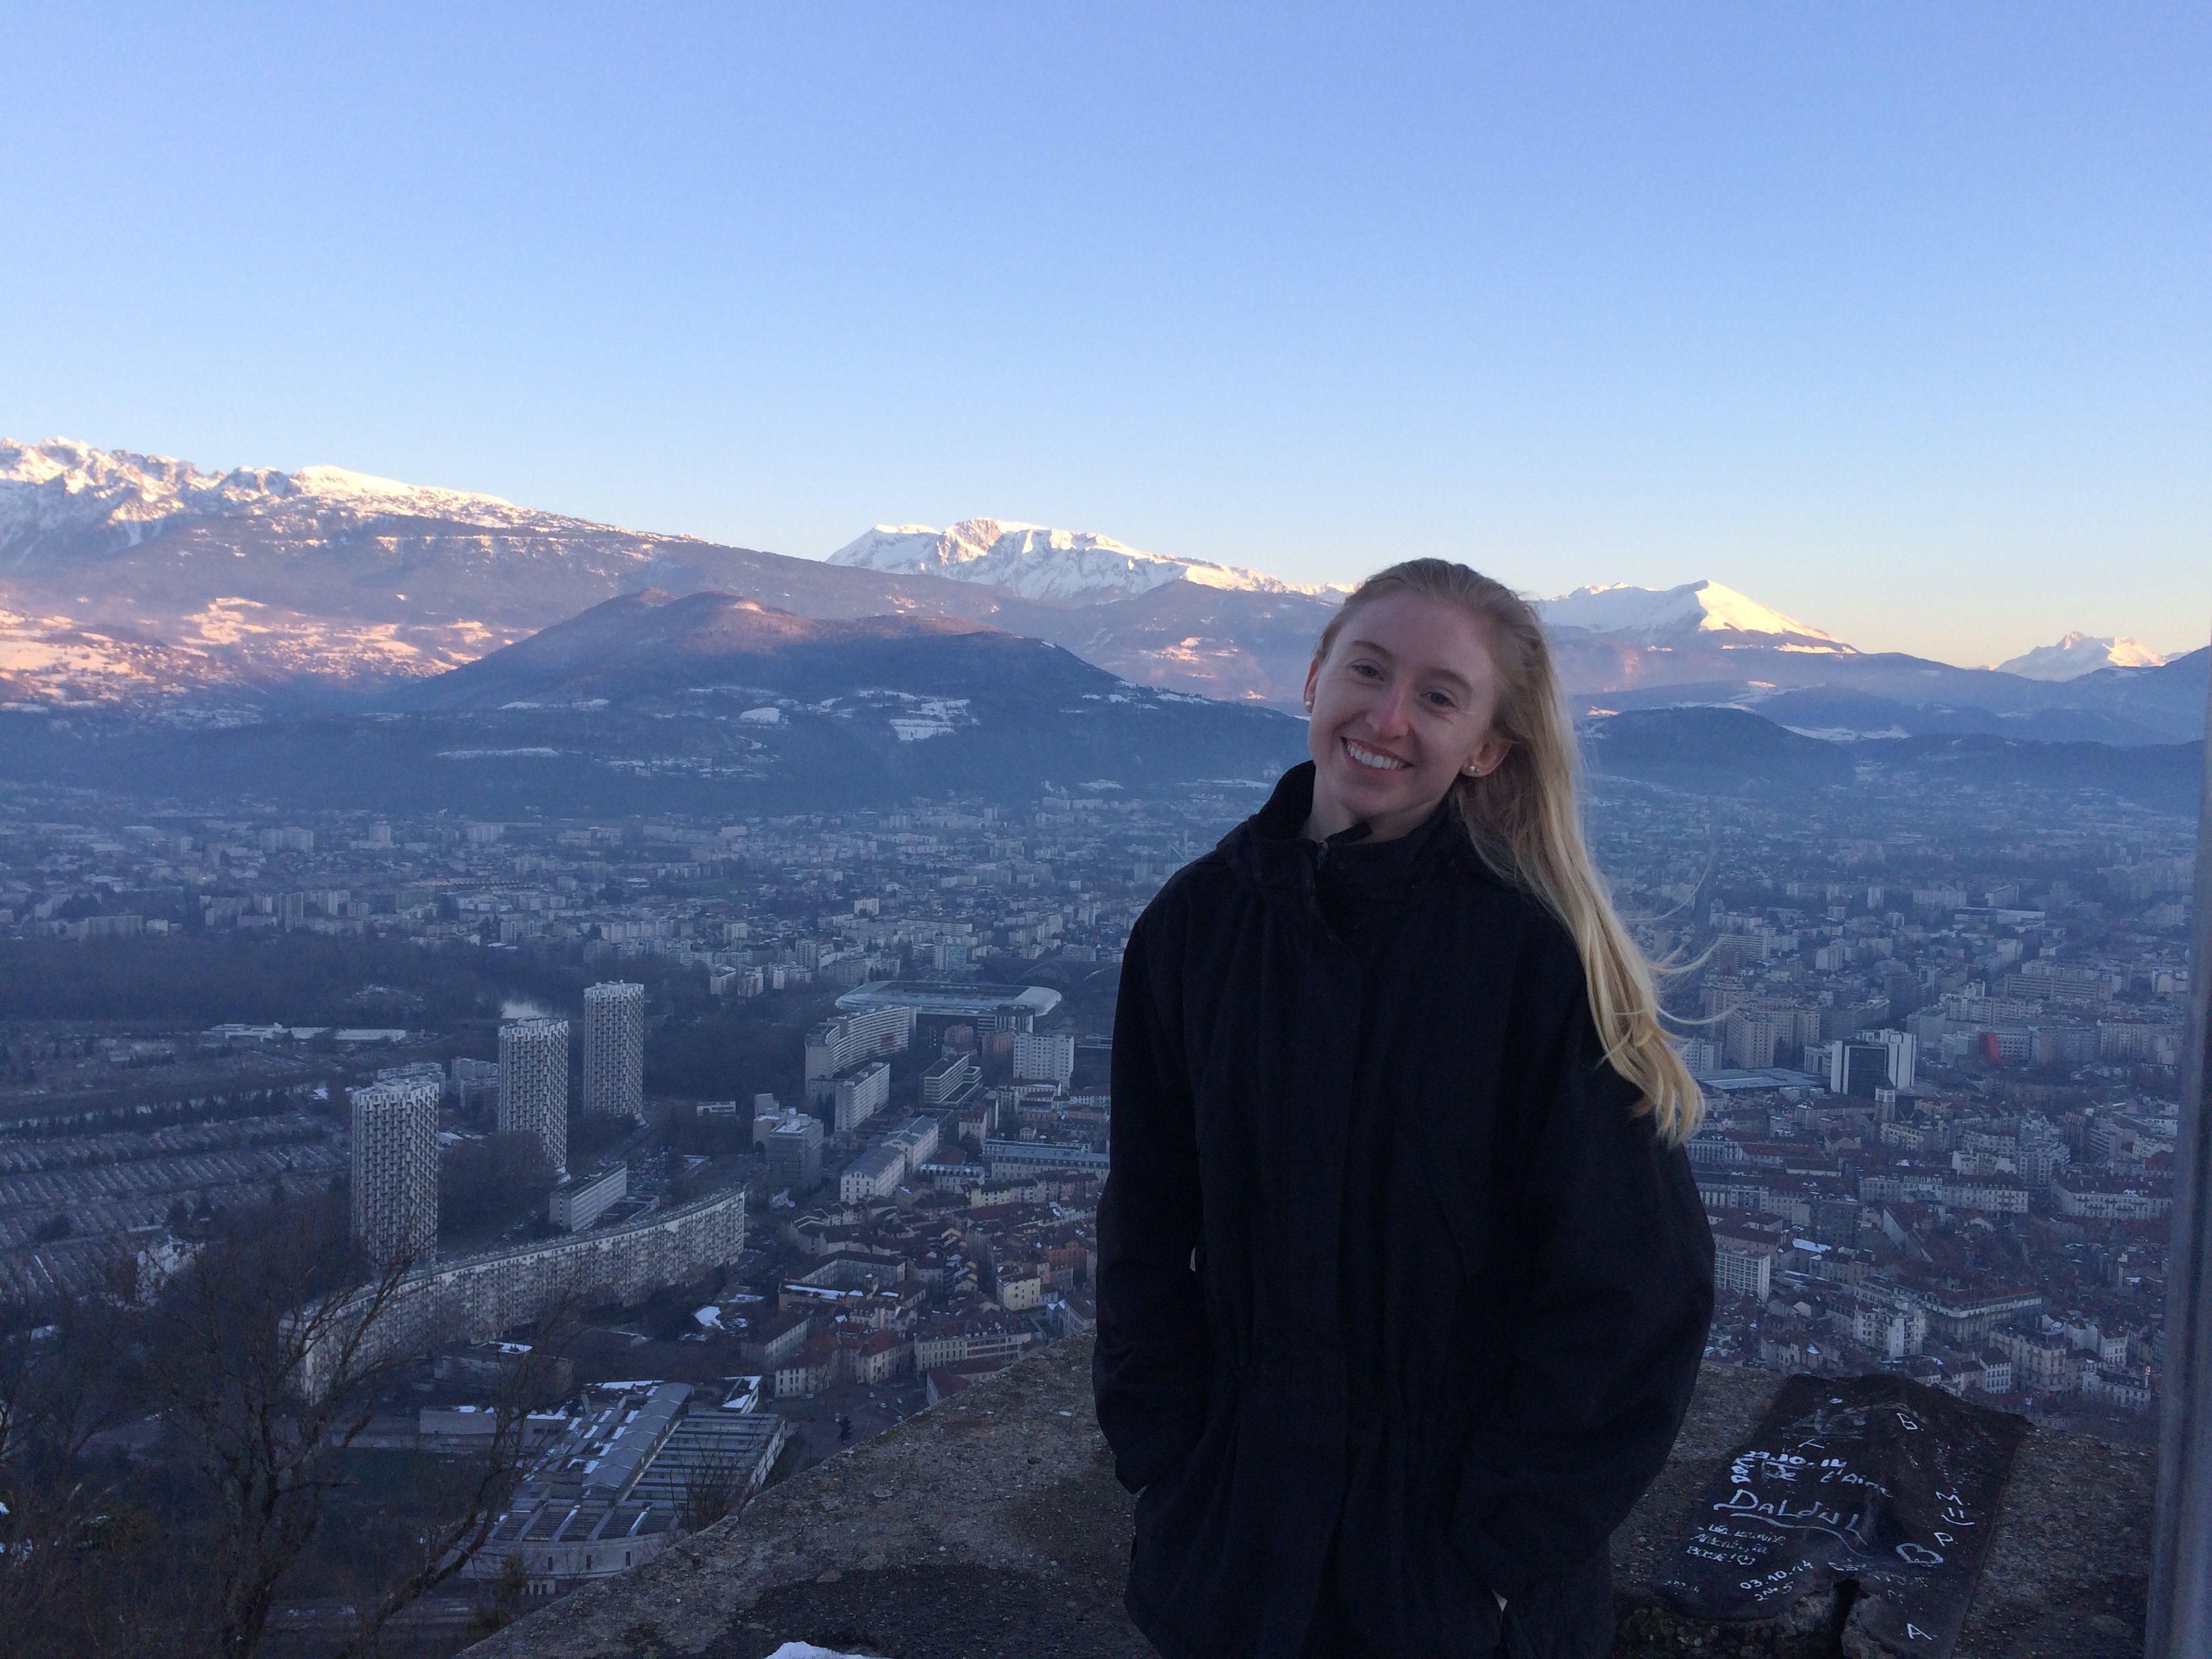 This image shows Grenoble, the beautiful Alpine city in the Southeastern part of France, that I spent 5 months living in. This photo was taken about a month after living there, after overcoming all the hardships of the first month abroad. In this photo, I am comfortable and happy. I climbed a mountain for a breathtaking view and the experience abroad made me feel more grateful, confident, and alive.